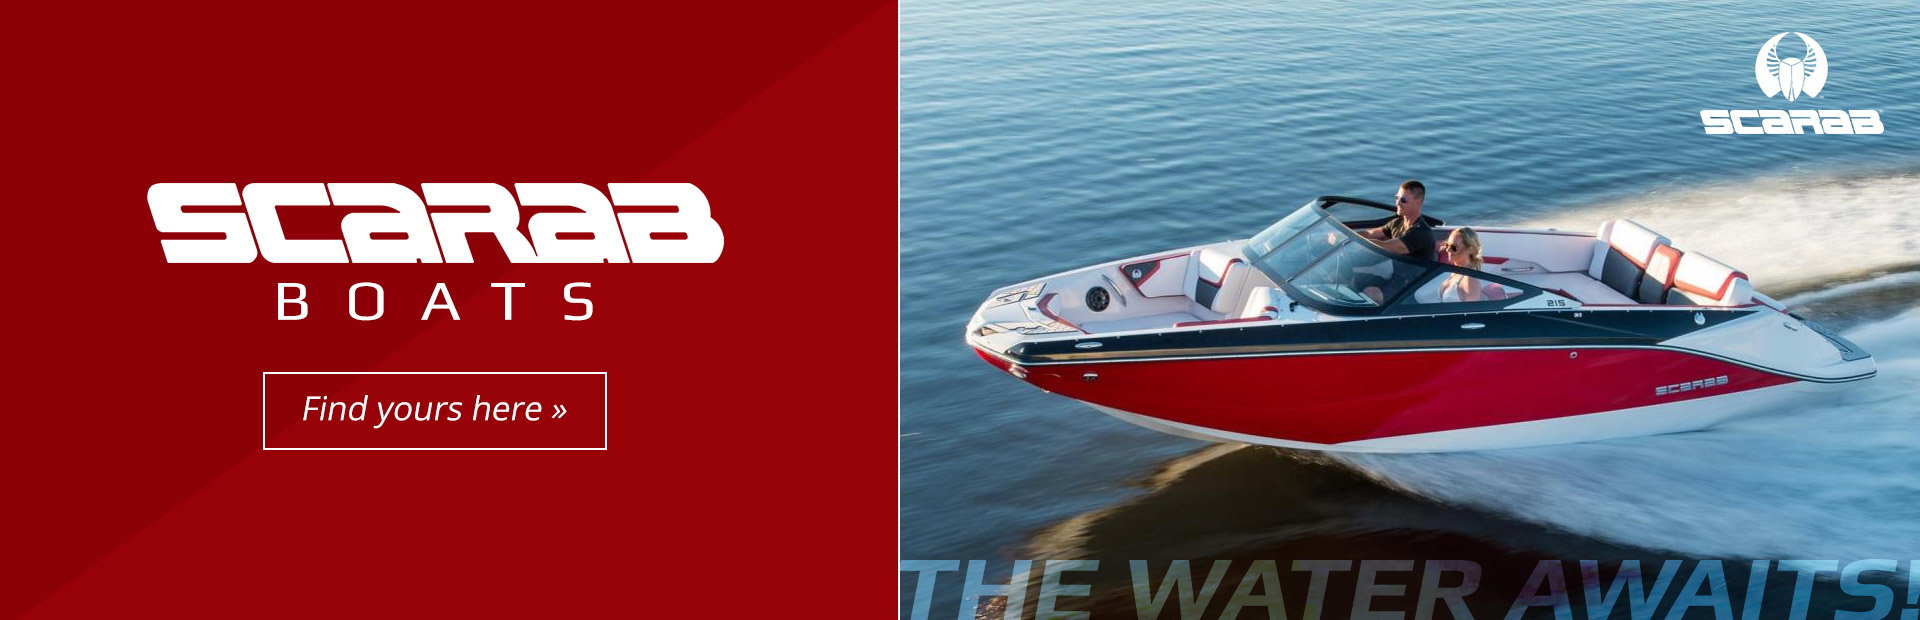 Scarab Boats: Click here to find yours today!